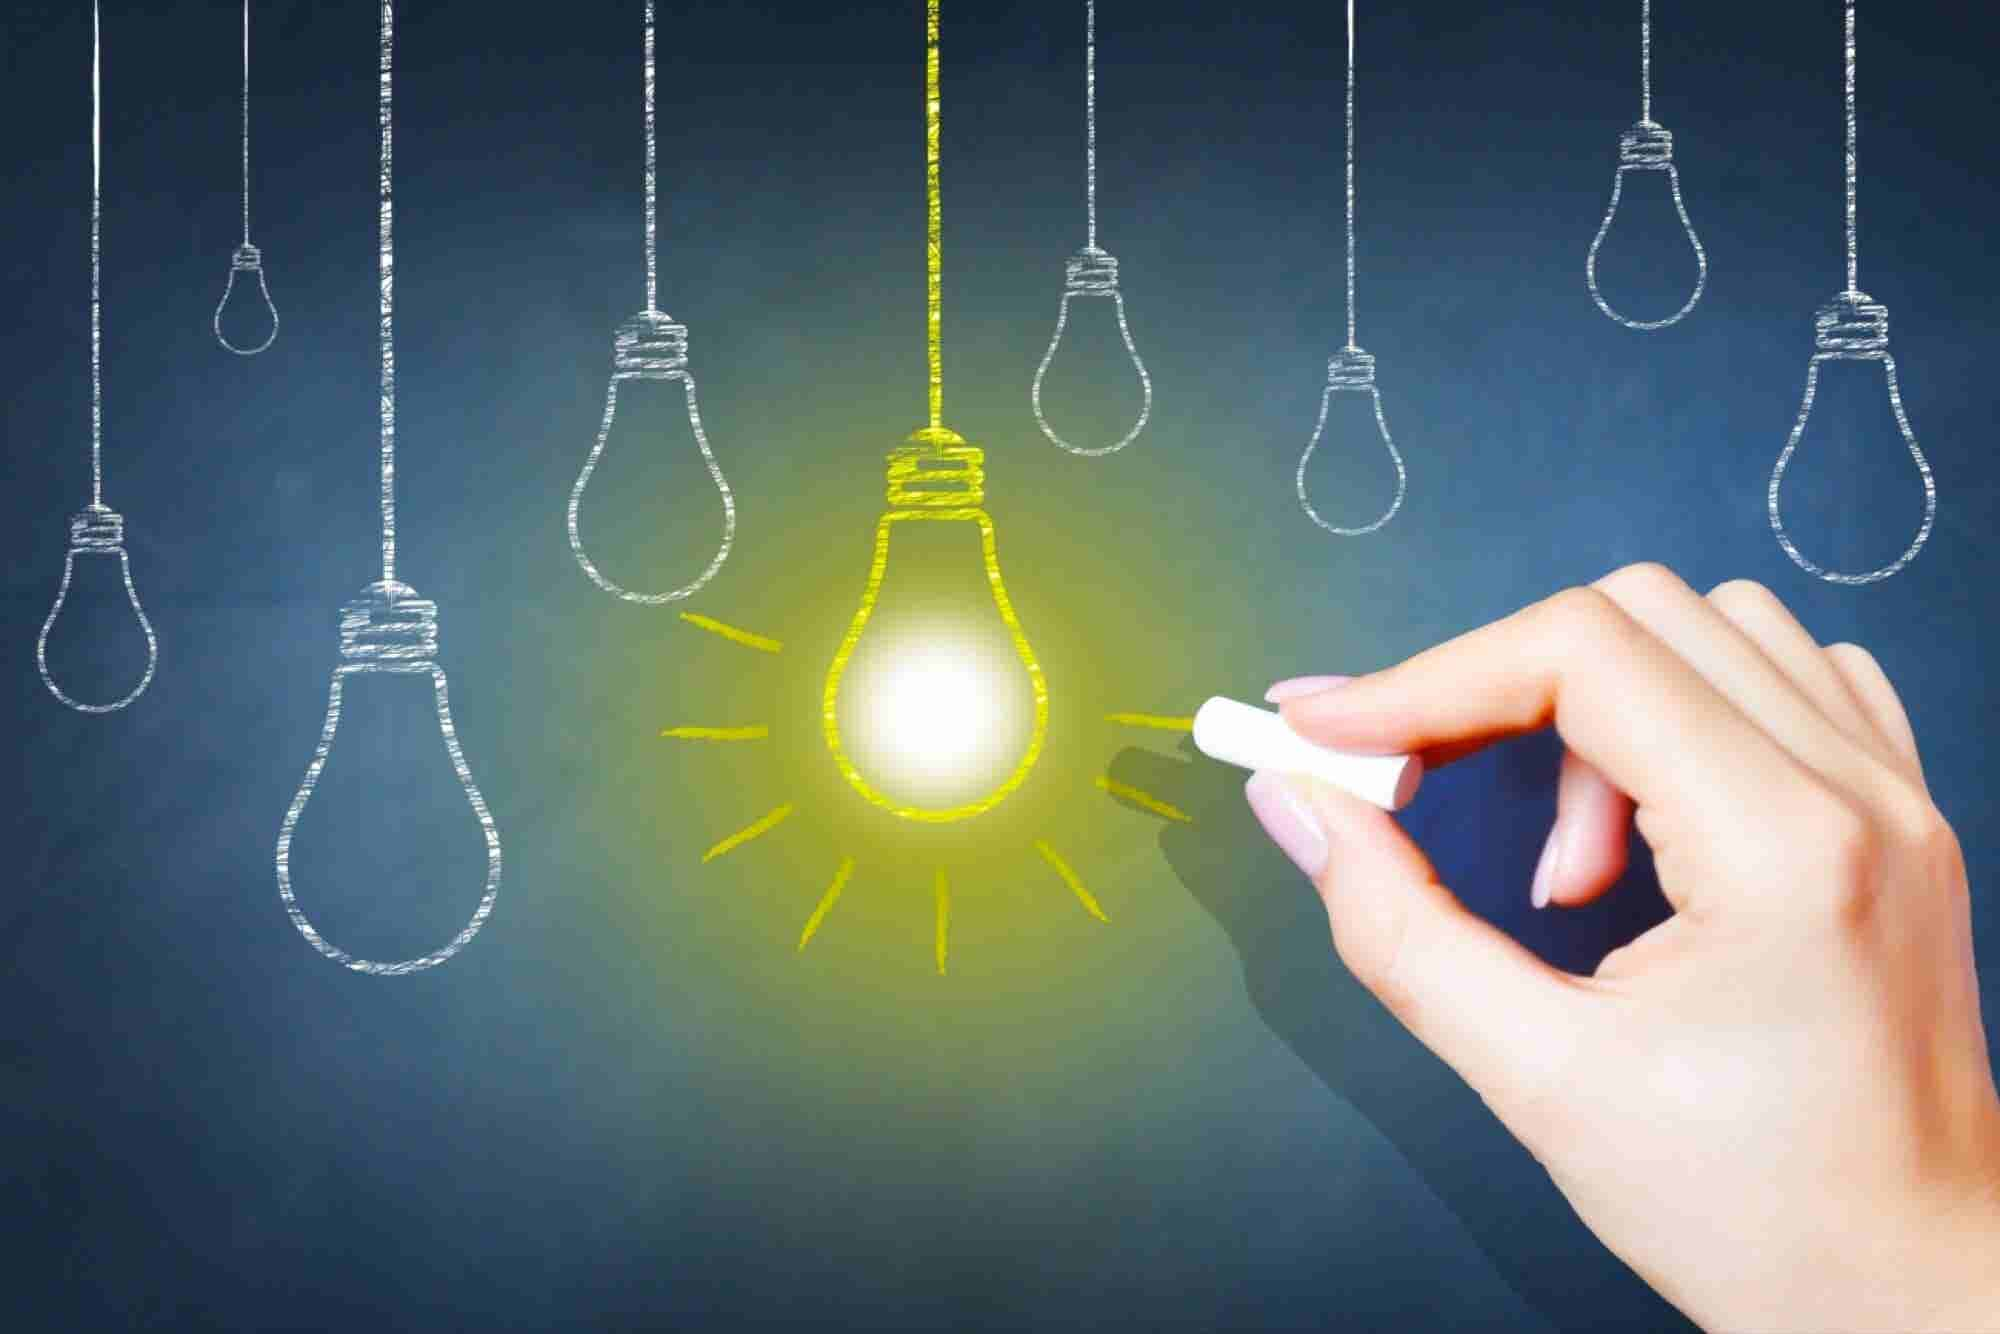 Smart lighting: Industry estimates growth in billions by 2020